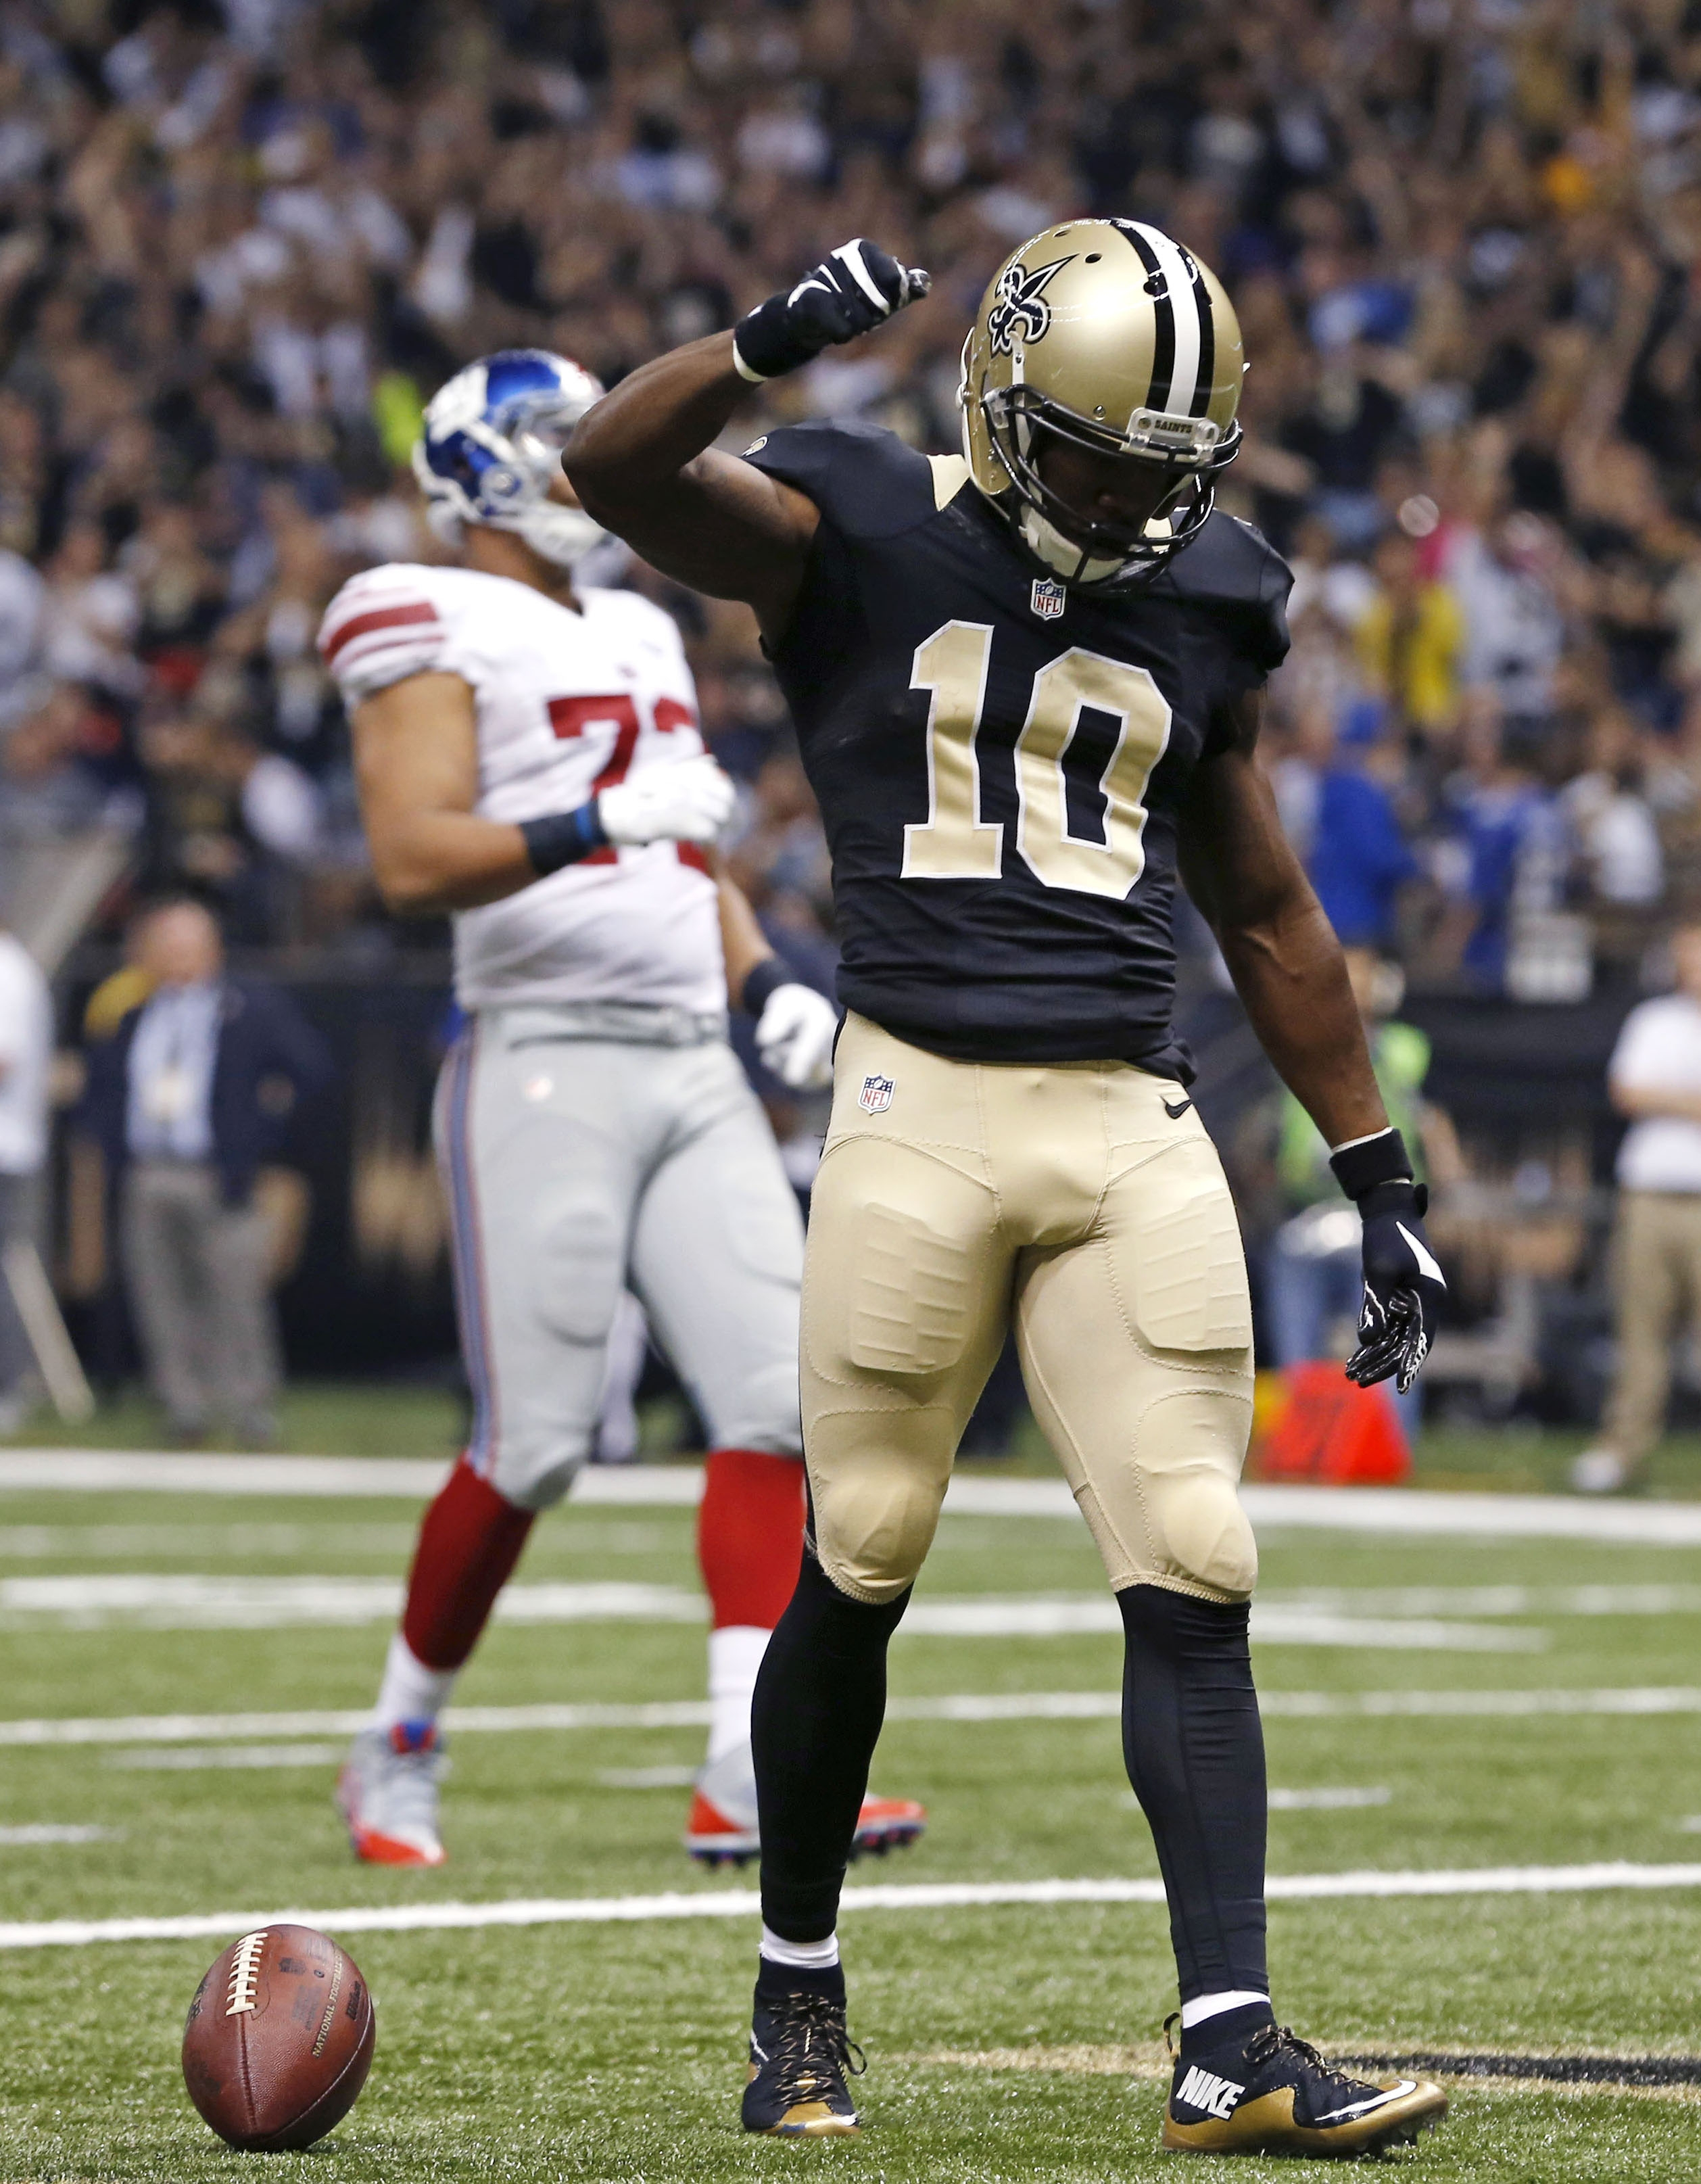 New Orleans Saints wide receiver Brandin Cooks (10) celebrates his touchdown reception in the first half of an NFL football game against the New York Giants in New Orleans, Sunday, Nov. 1, 2015. (AP Photo/Jonathan Bachman)